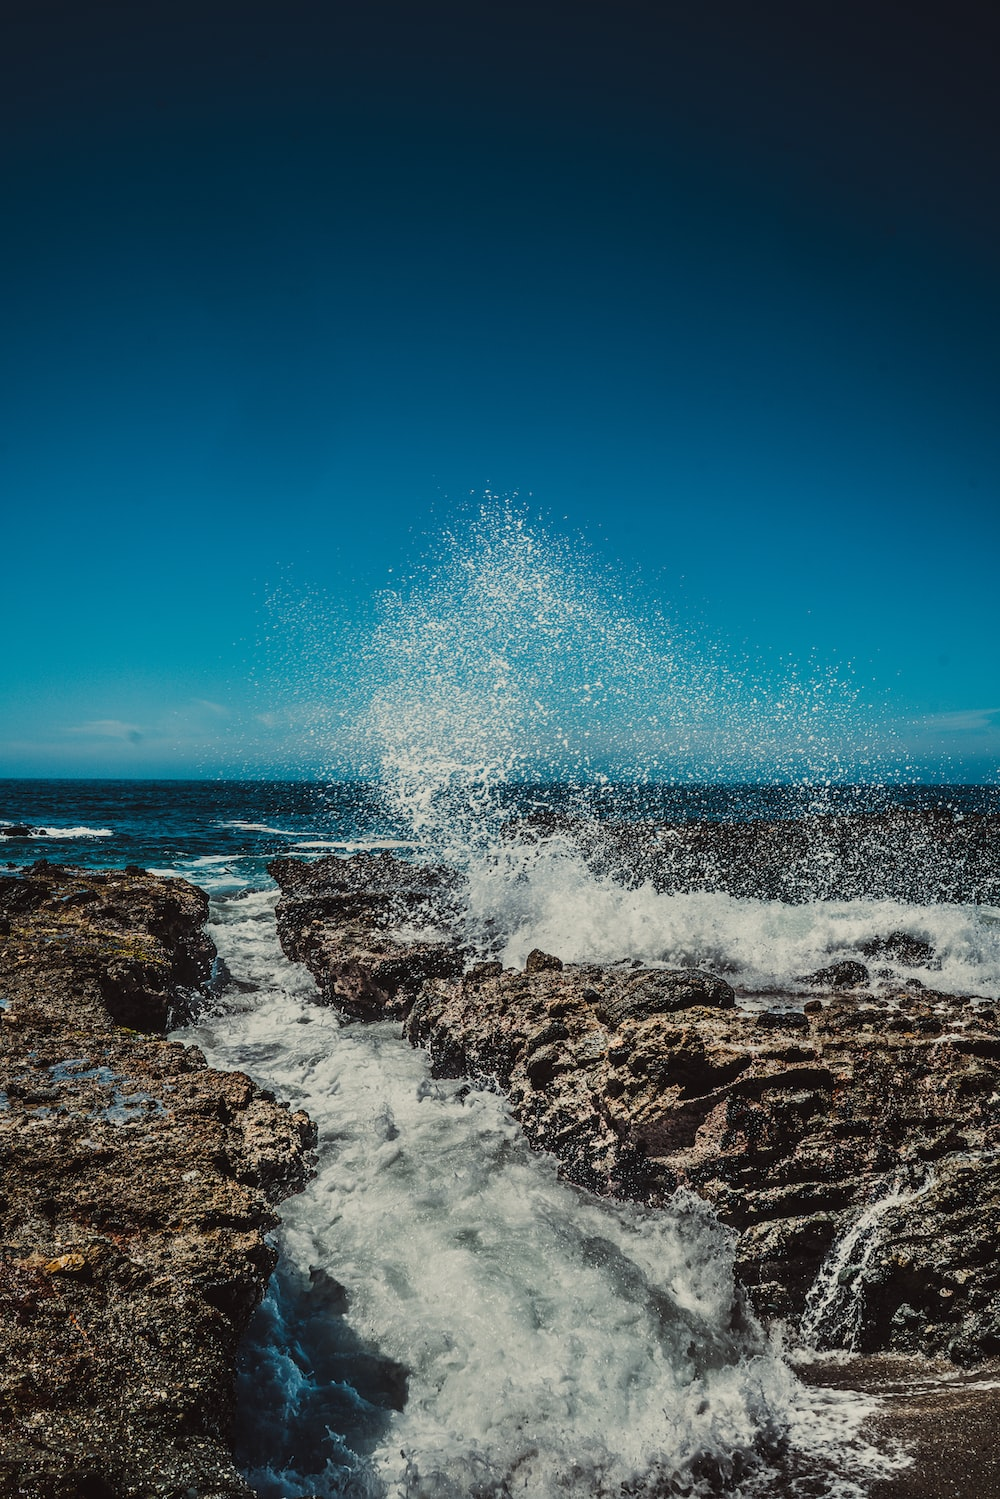 water splashing on rock under blue sky